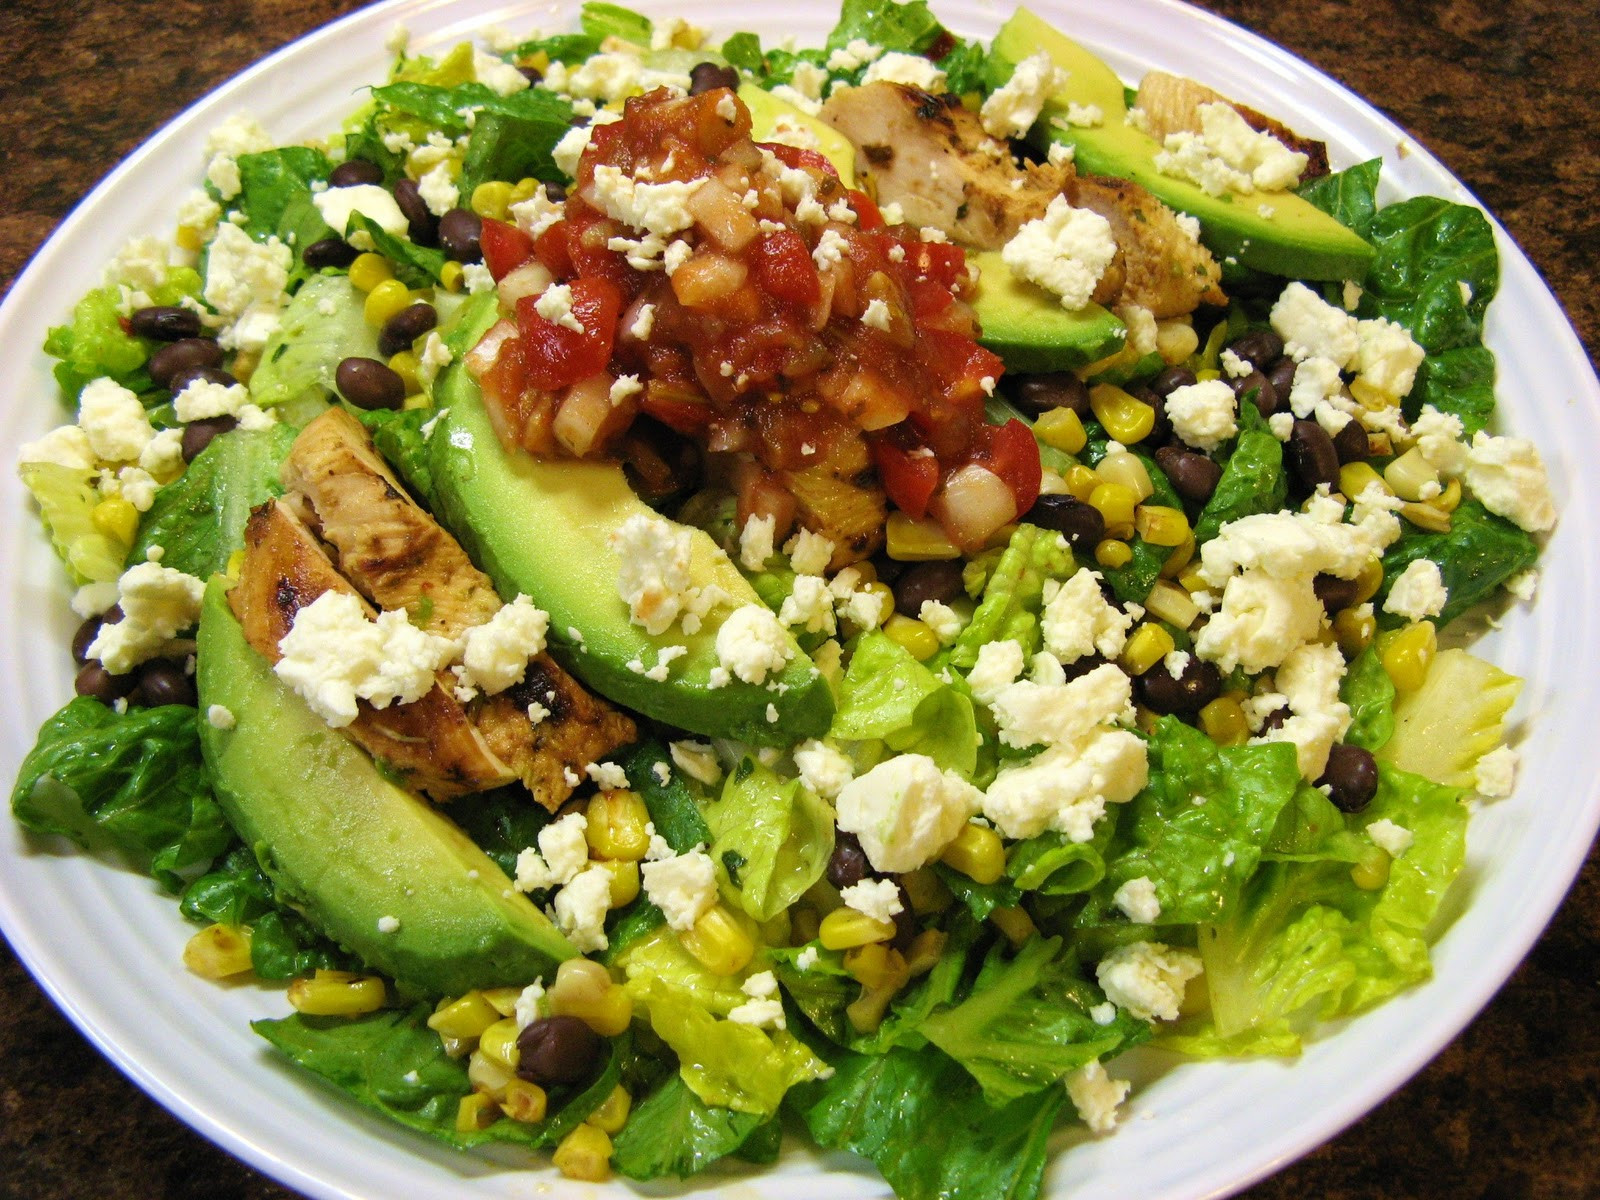 Chicken Salad Healthy  The Well Fed Newlyweds Healthy Recipes to Kick f the